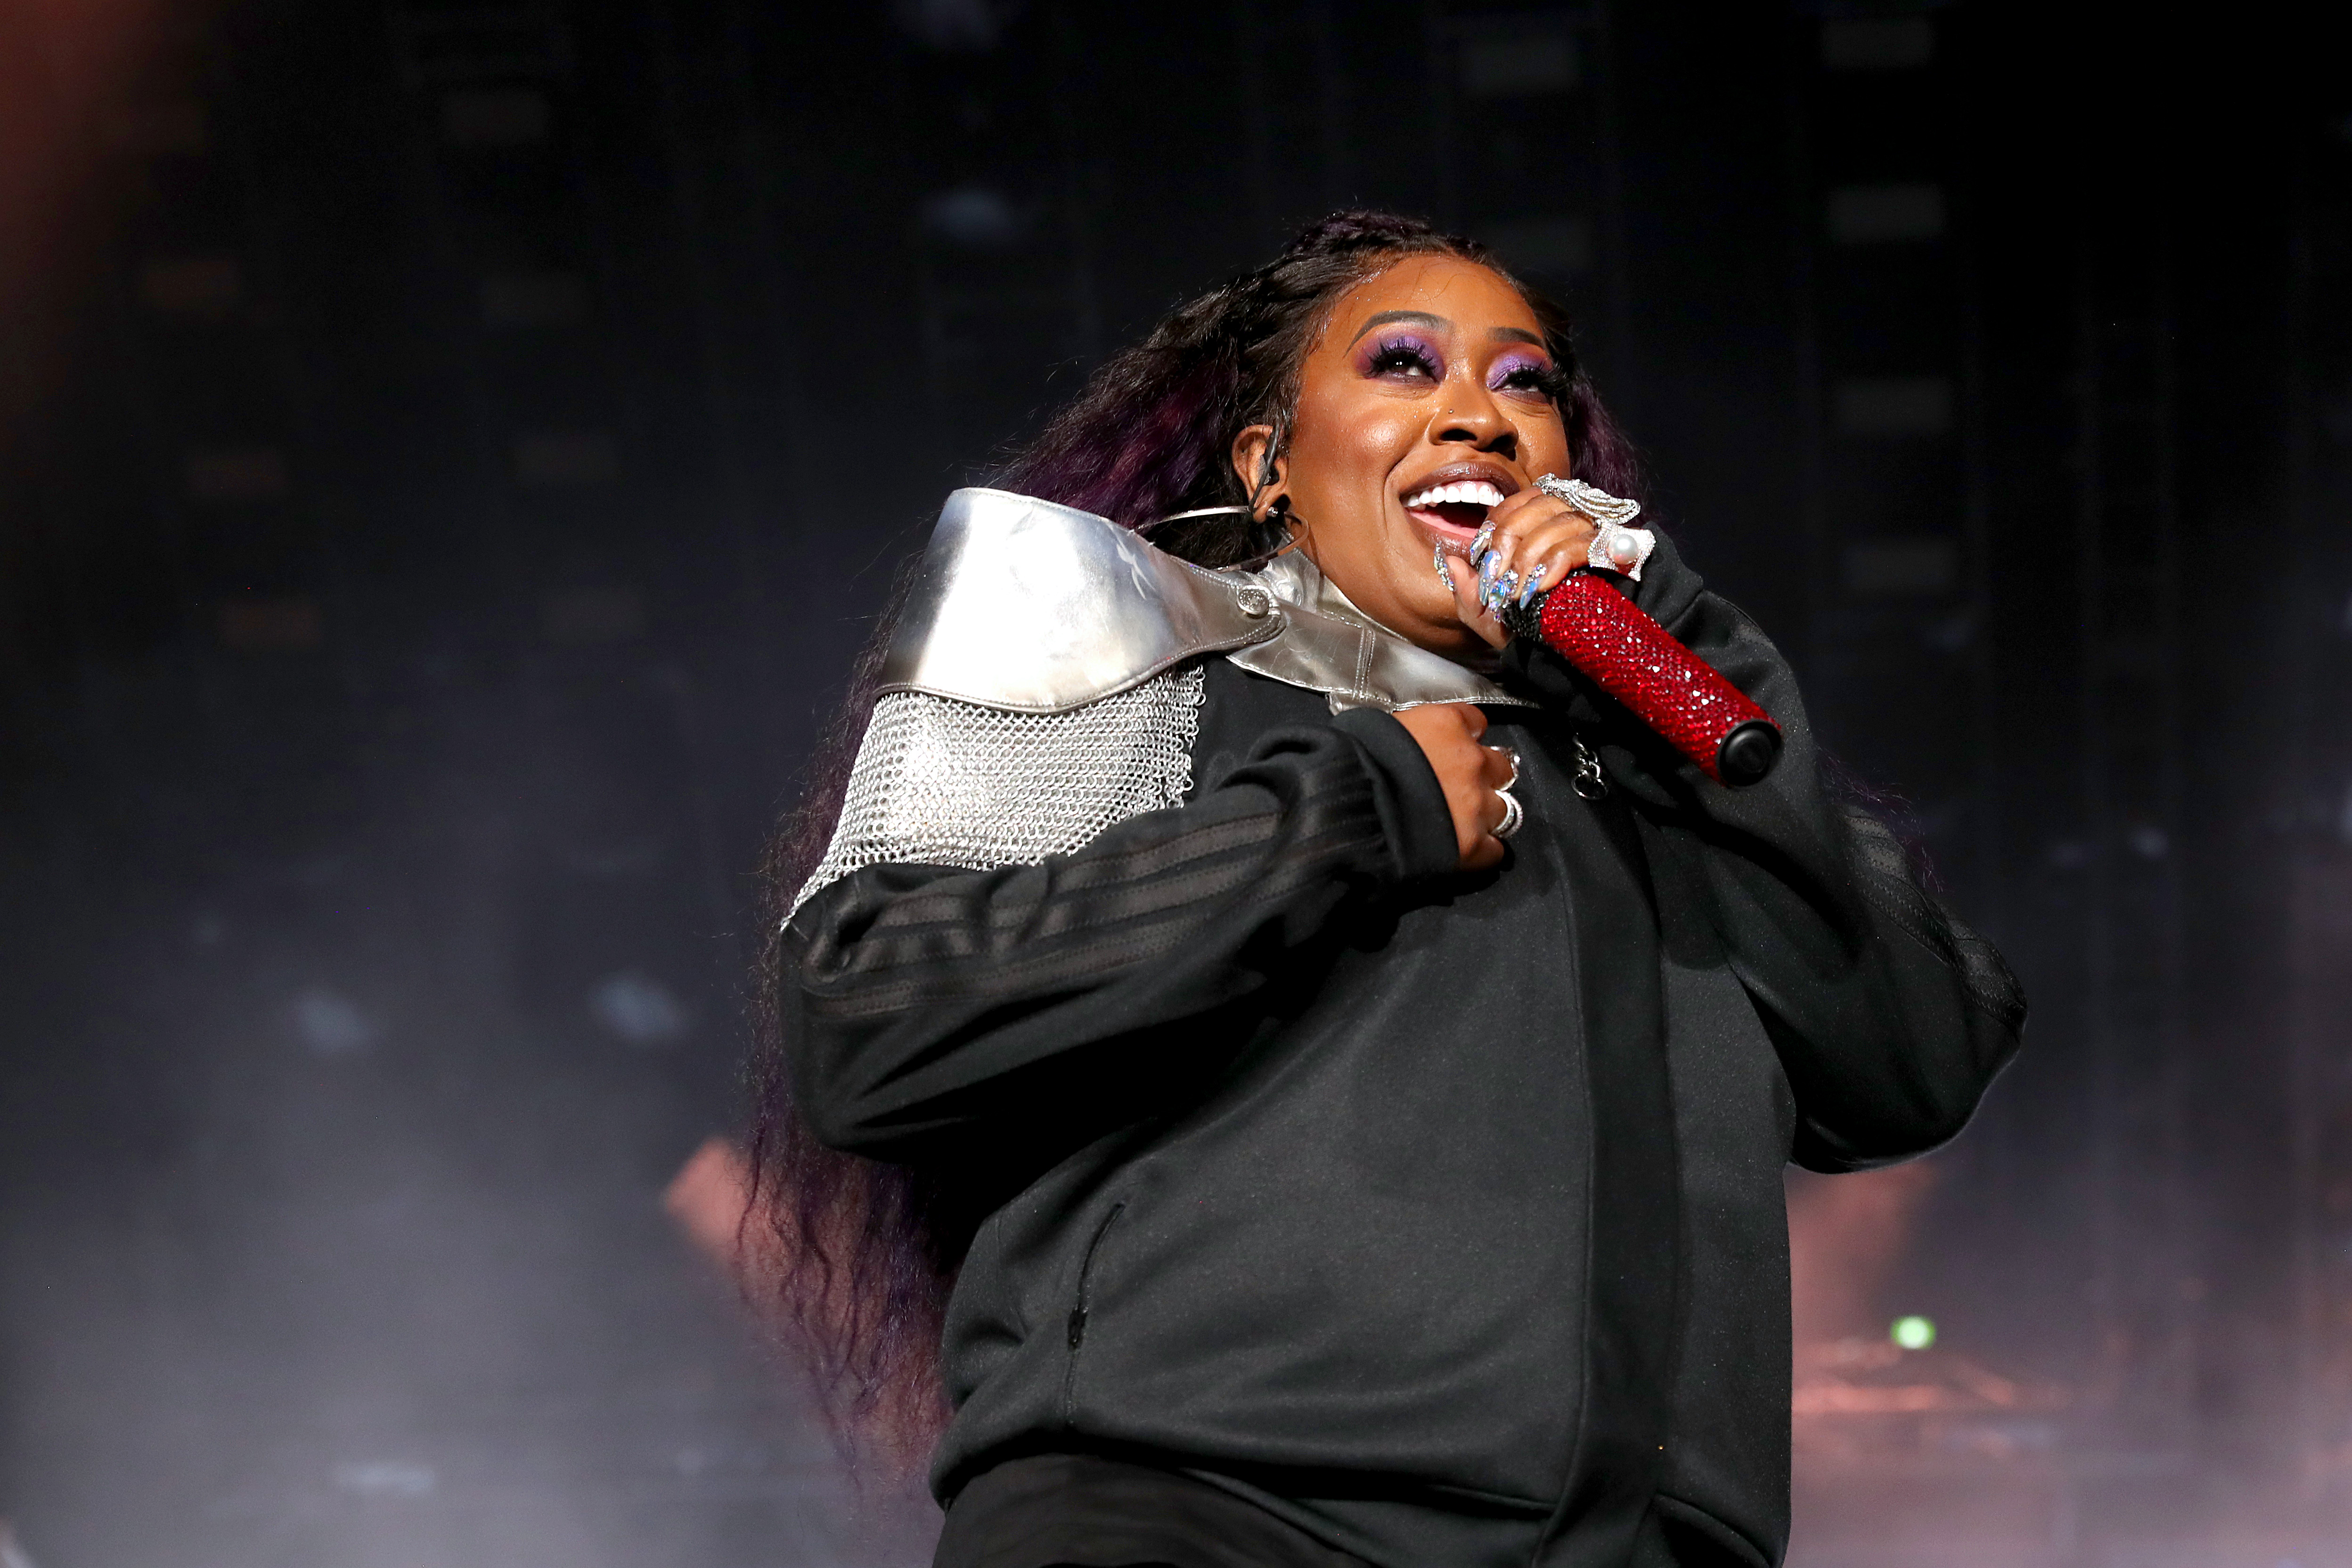 Missy Elliott performs onstage during the 2019 ESSENCE Festival Presented By Coca-Cola performs onstage during the at Louisiana Superdome